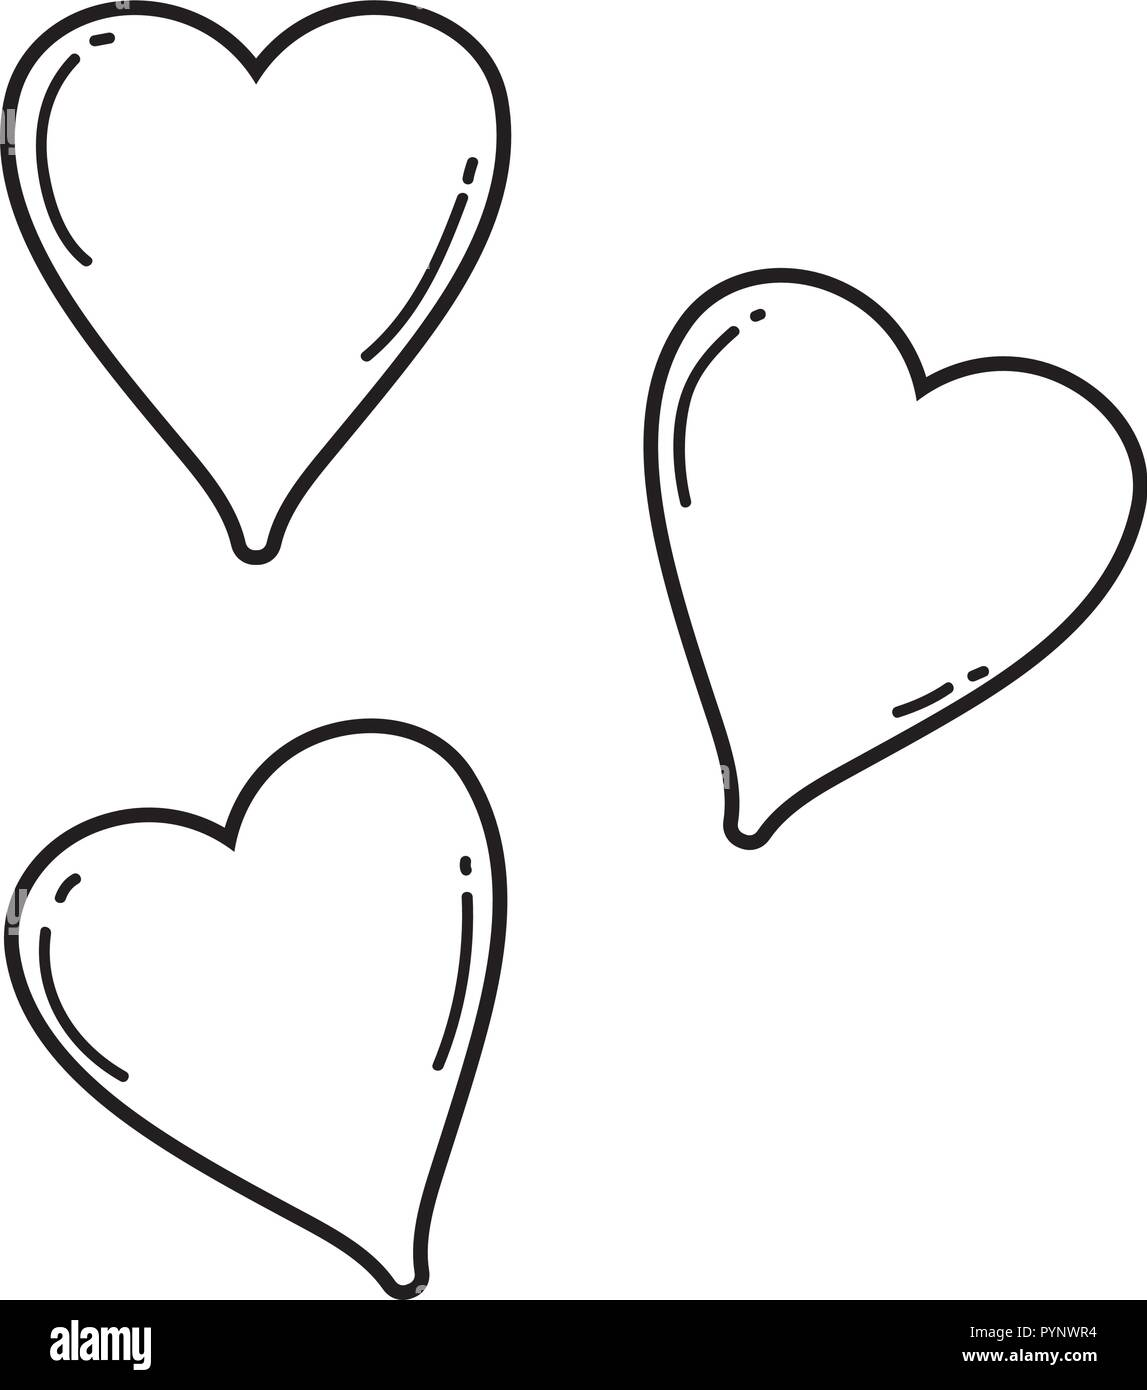 Cute Hearts Drawings Black And White Stock Vector Image Art Alamy